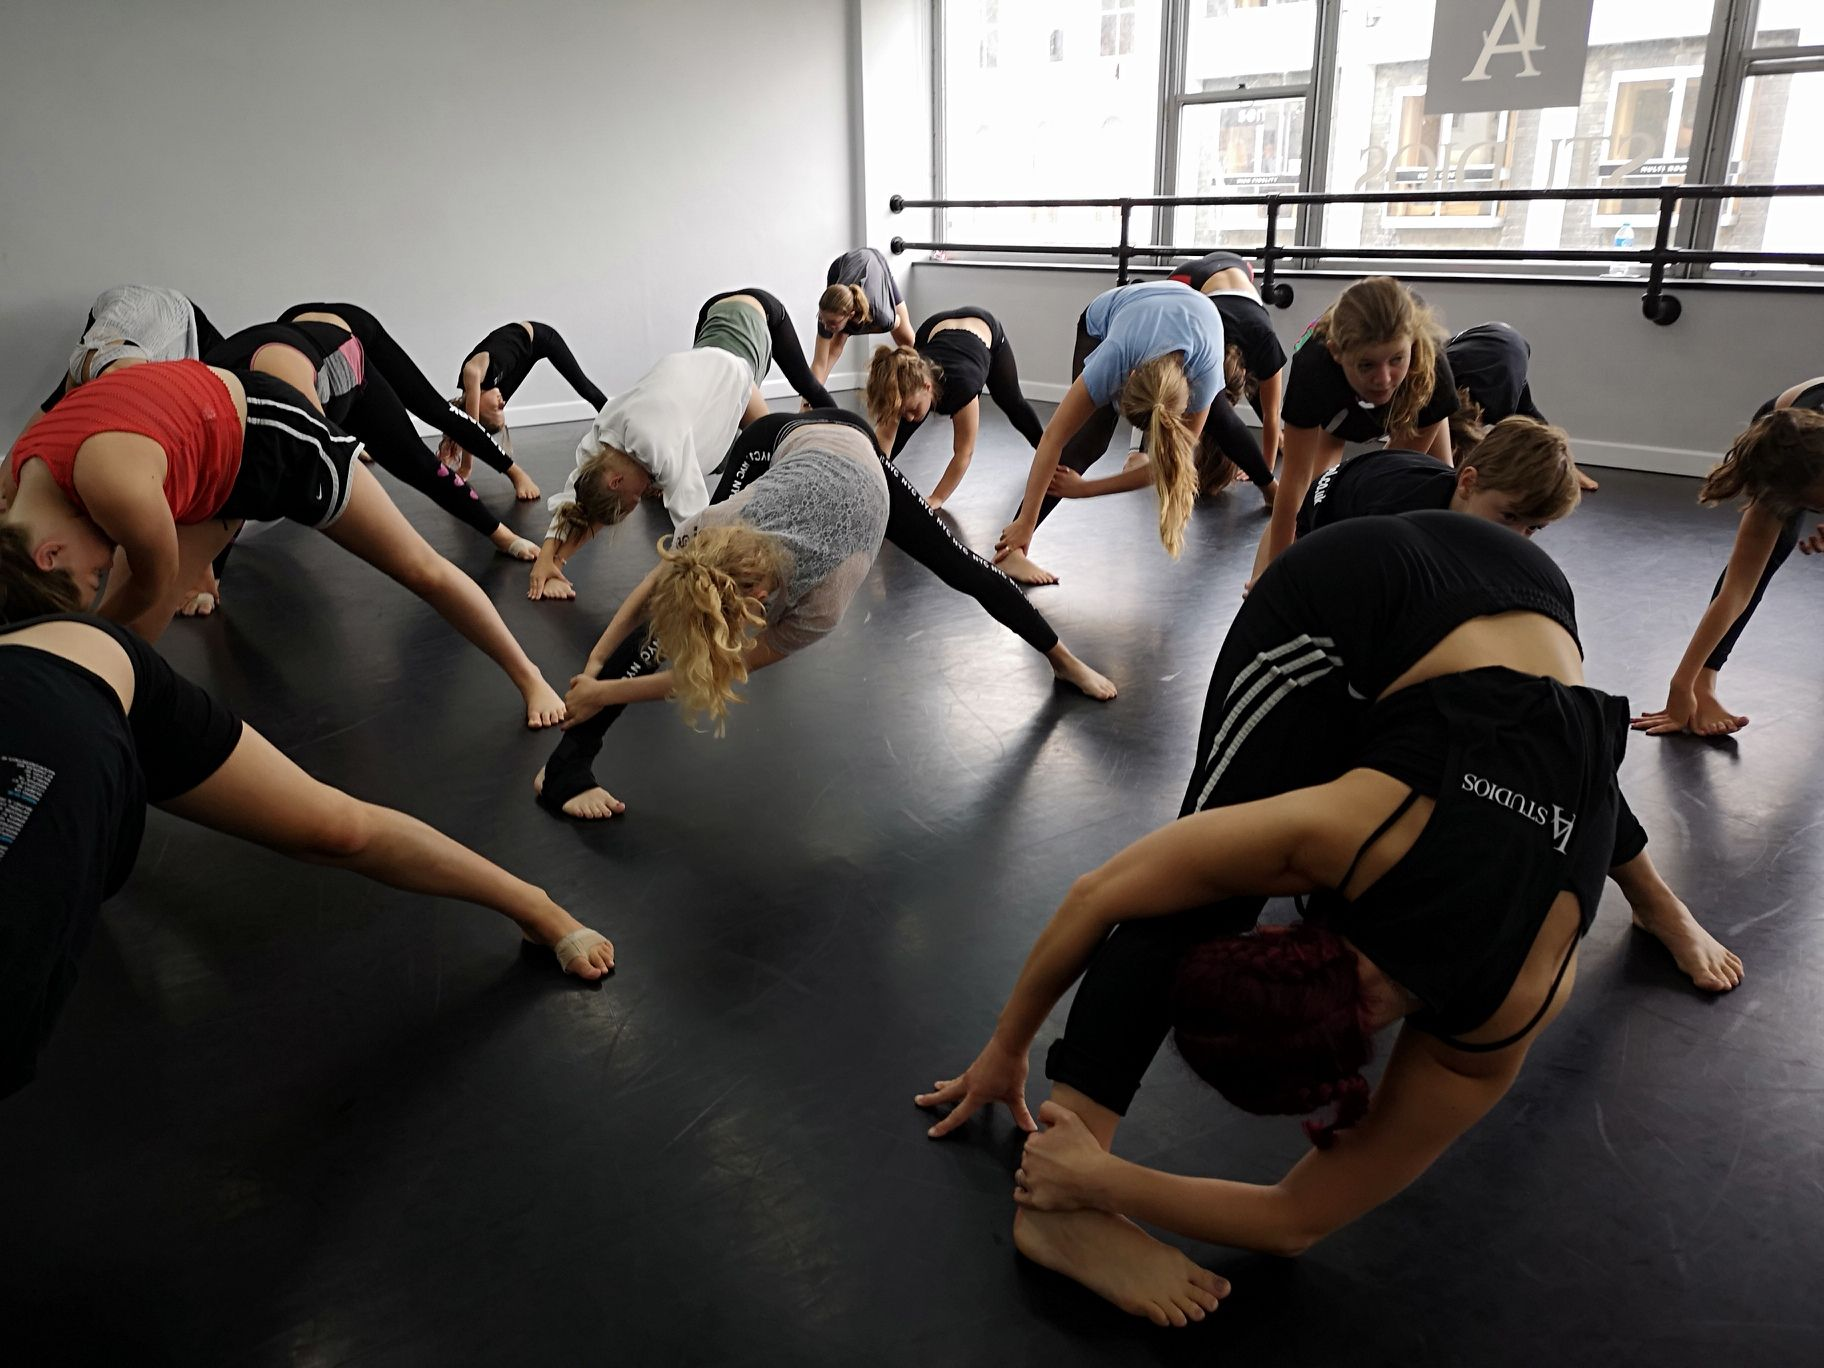 Dance Classes, Dance Studios, Fitness Studios, Space for Hire, Dance rehearsal space.